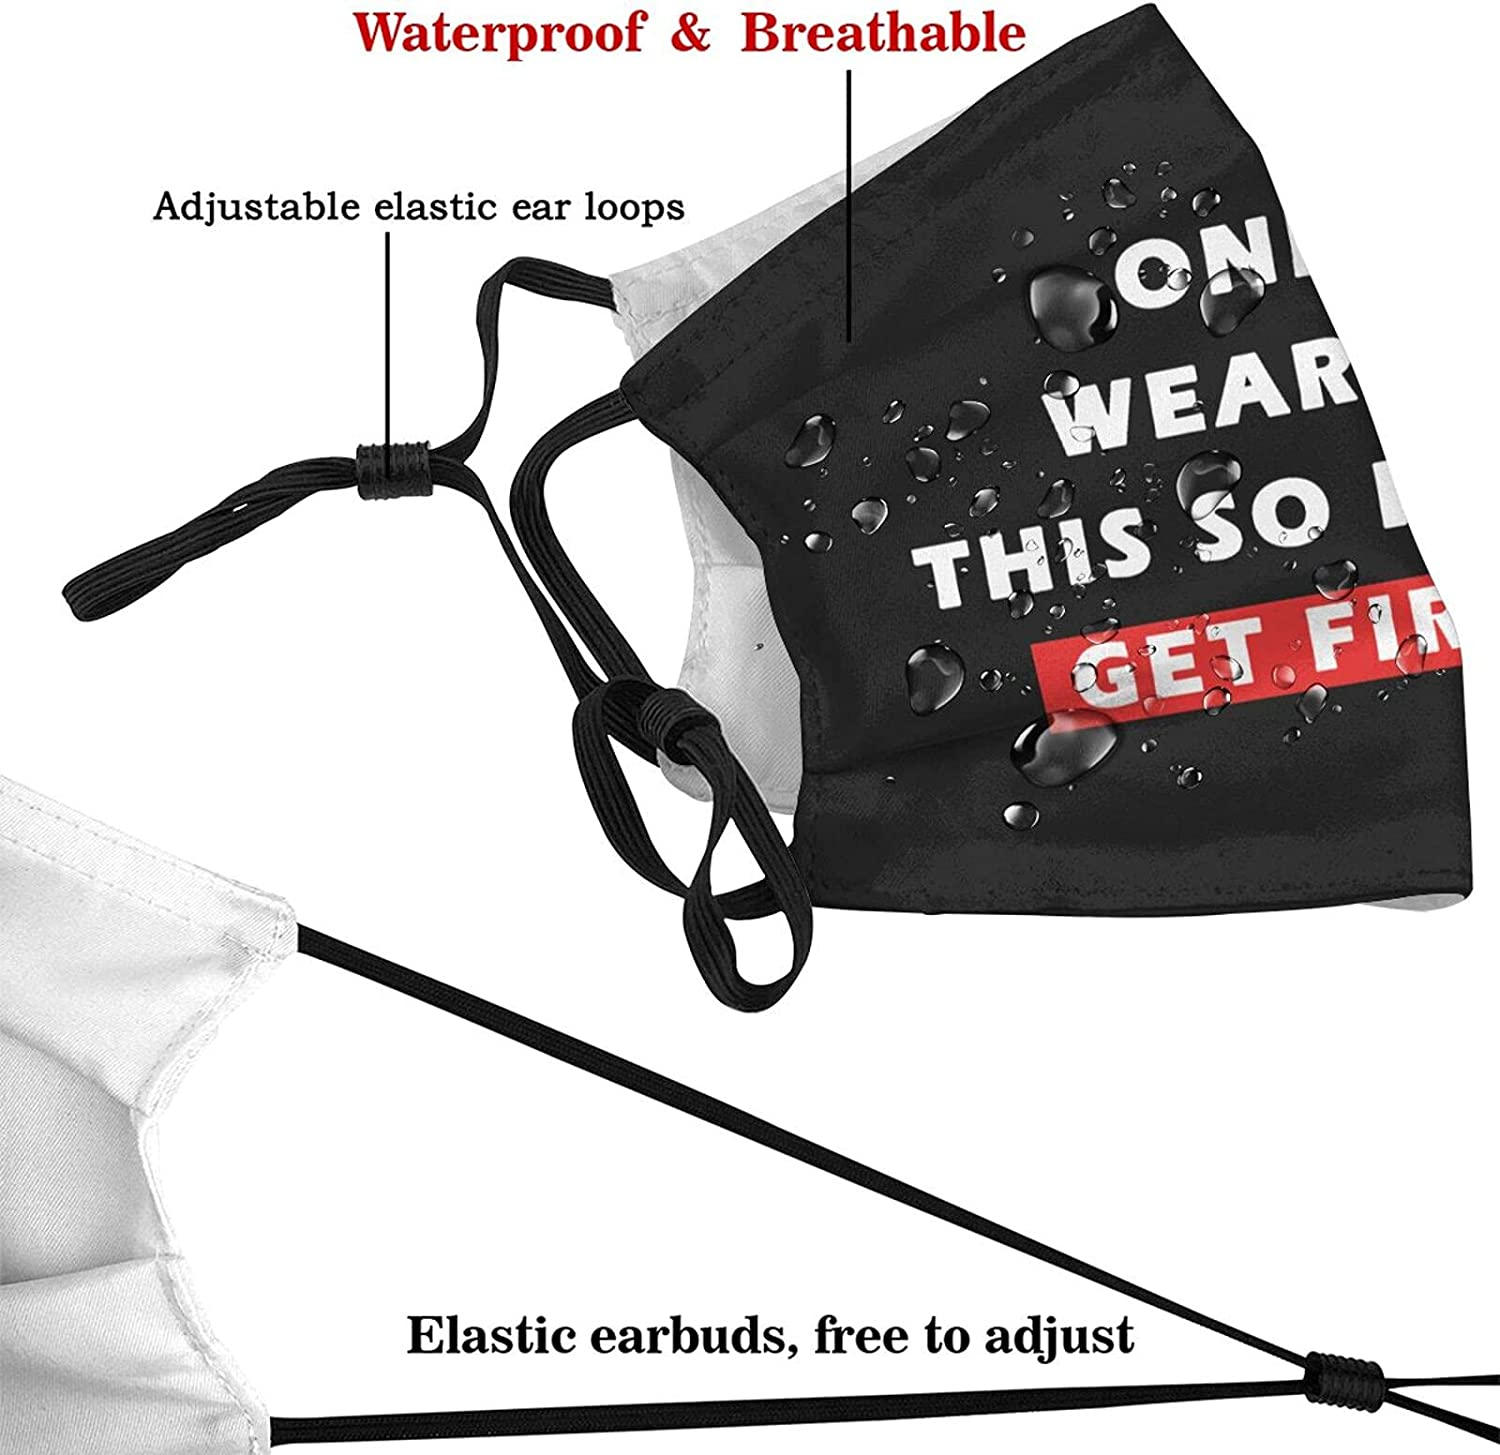 Only Wearing This So I Don't Get Fired Face Mask Earloops Protection Adjustable Balaclavas Unisex with 2 Filters